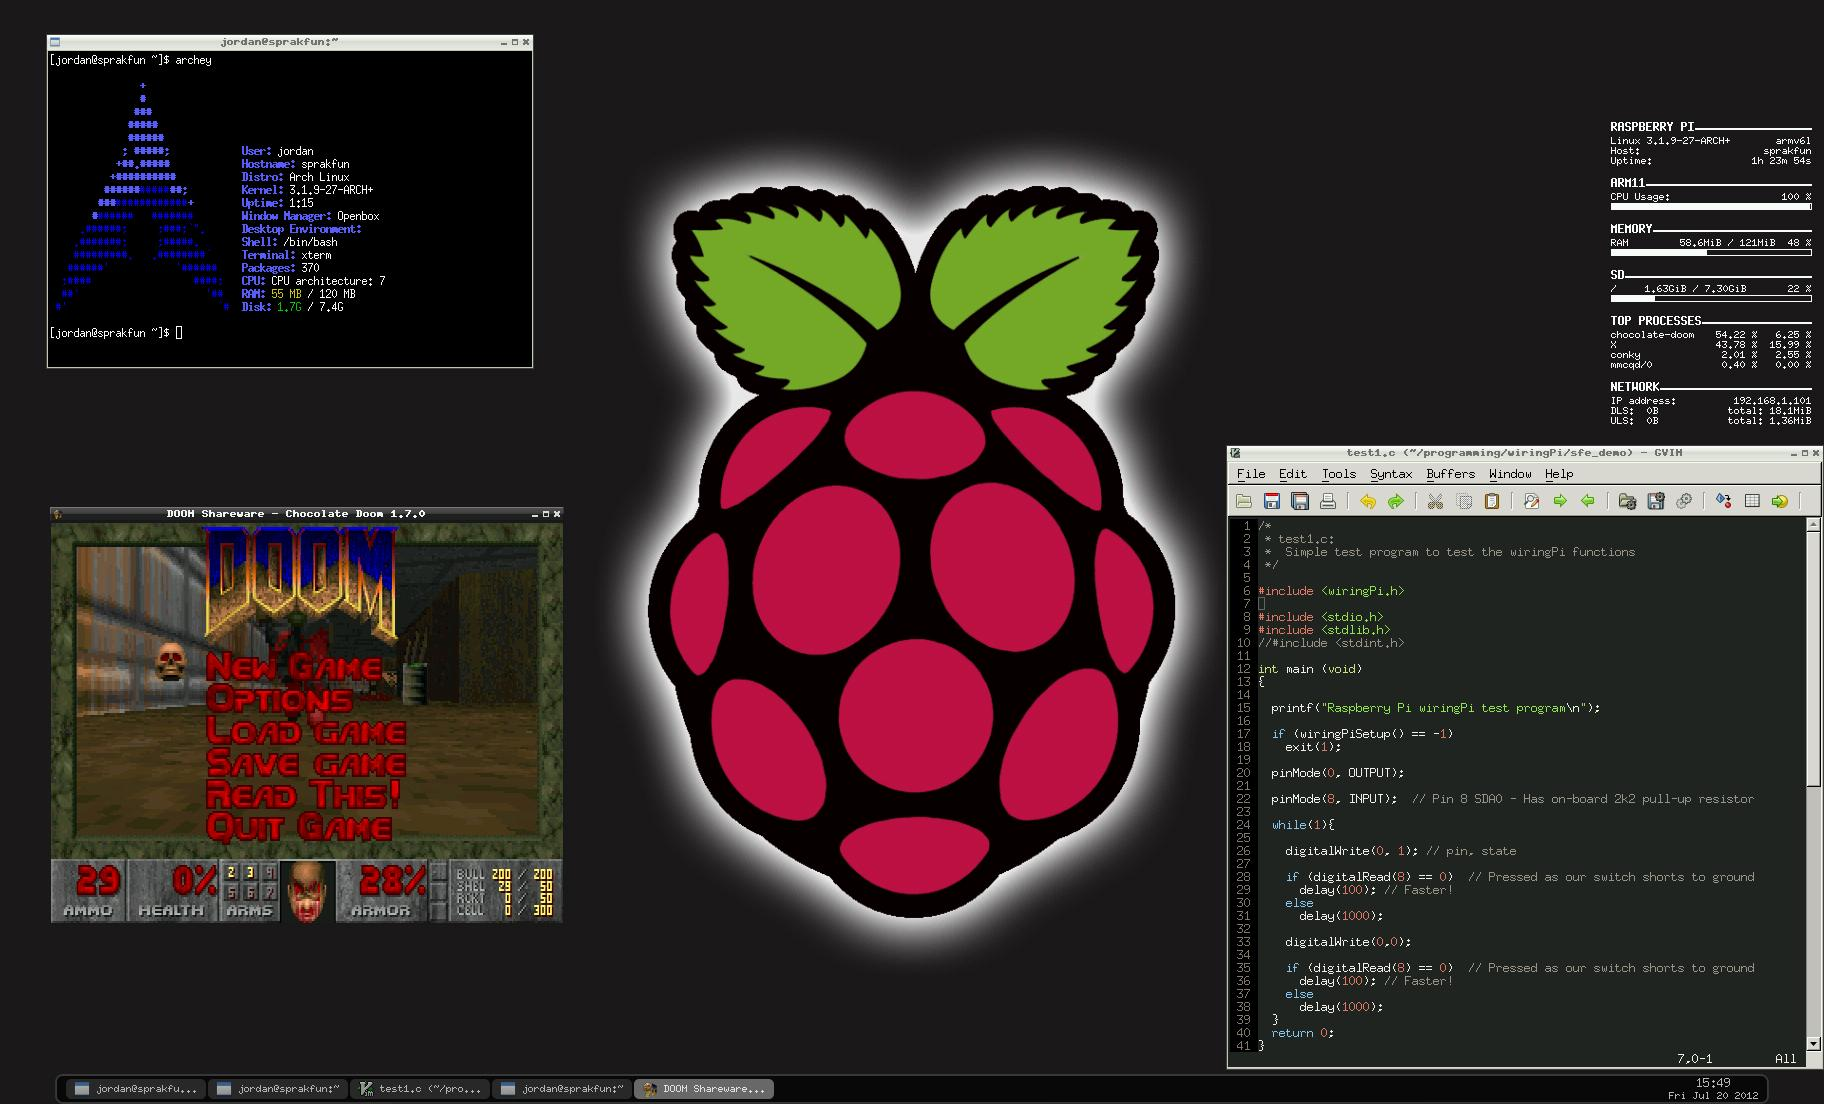 Raspberry Pi Arch Linux Arm Tutorial Lib4u Wiringpi Install Banana To Help Make That Happen We Have Written This Assist Those Who Might Be New The And Are Considering Dive Into